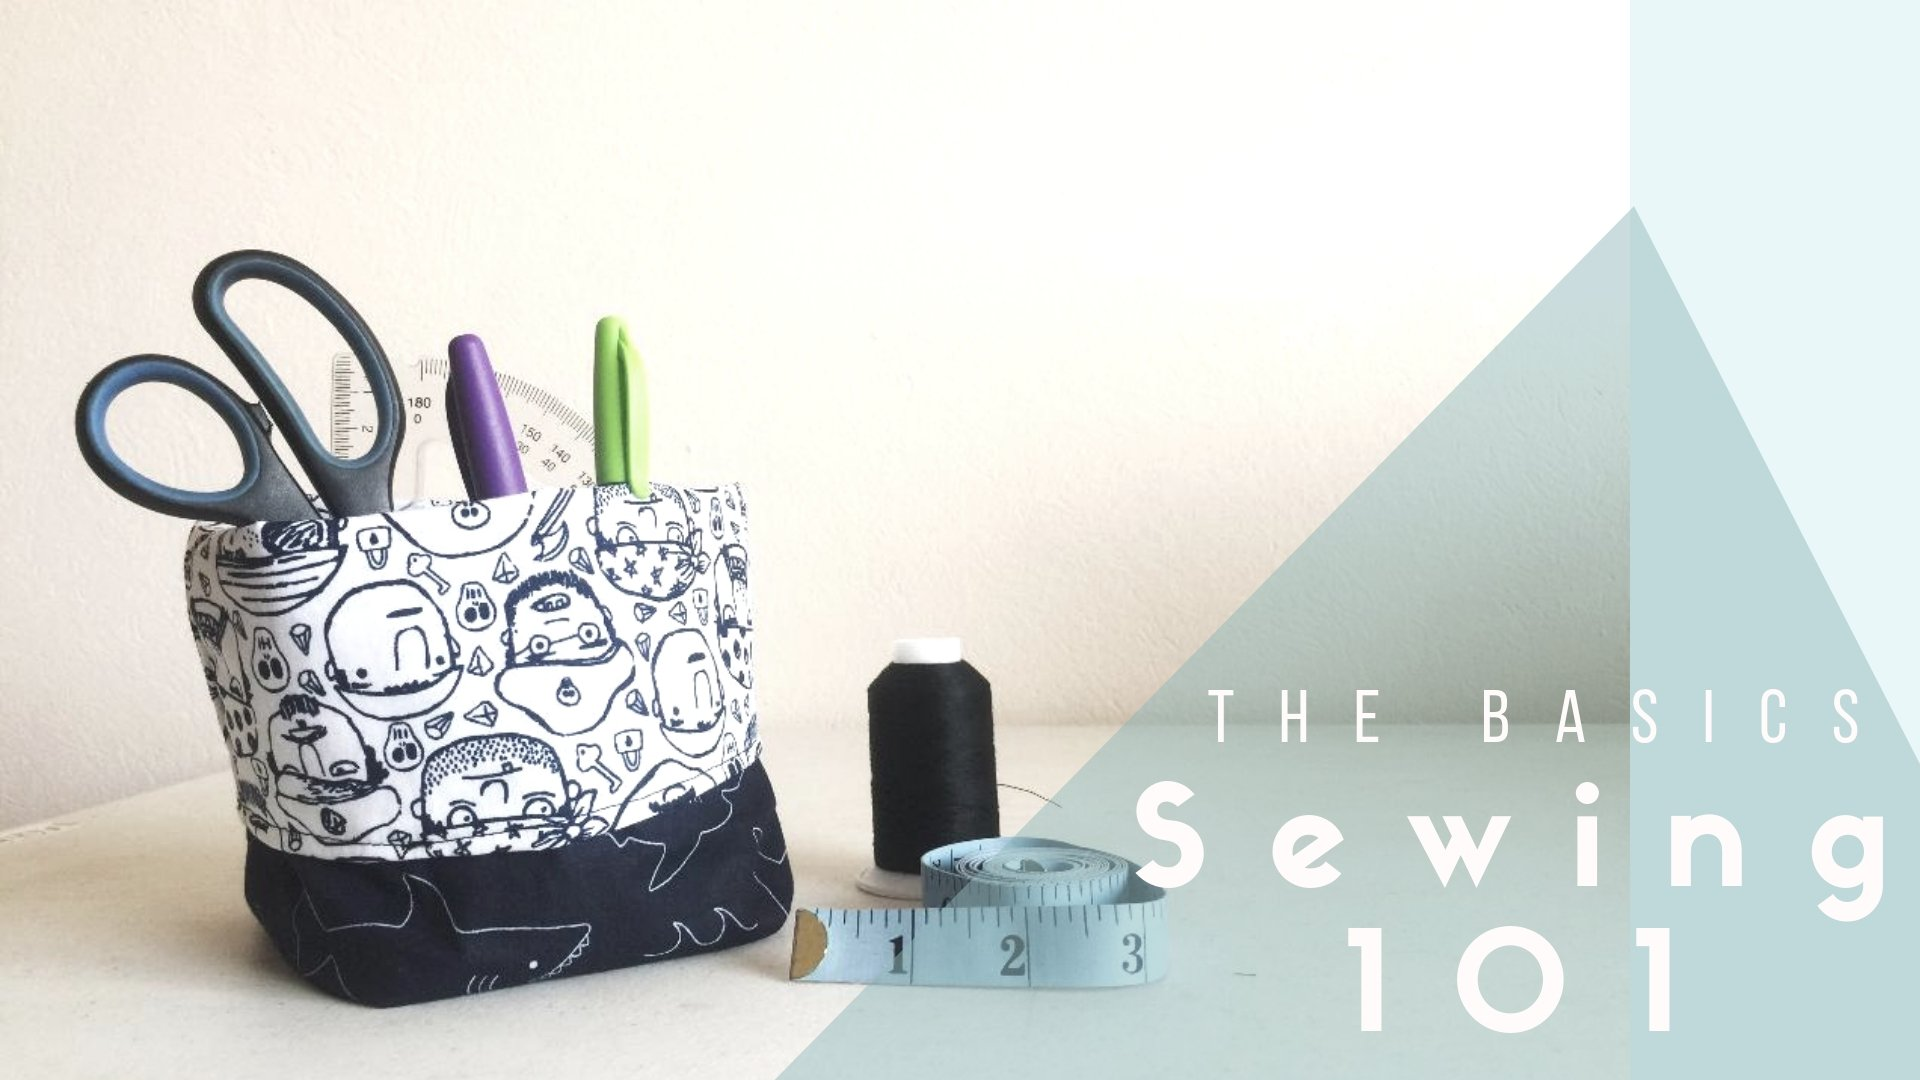 SEWING 101 - The basics